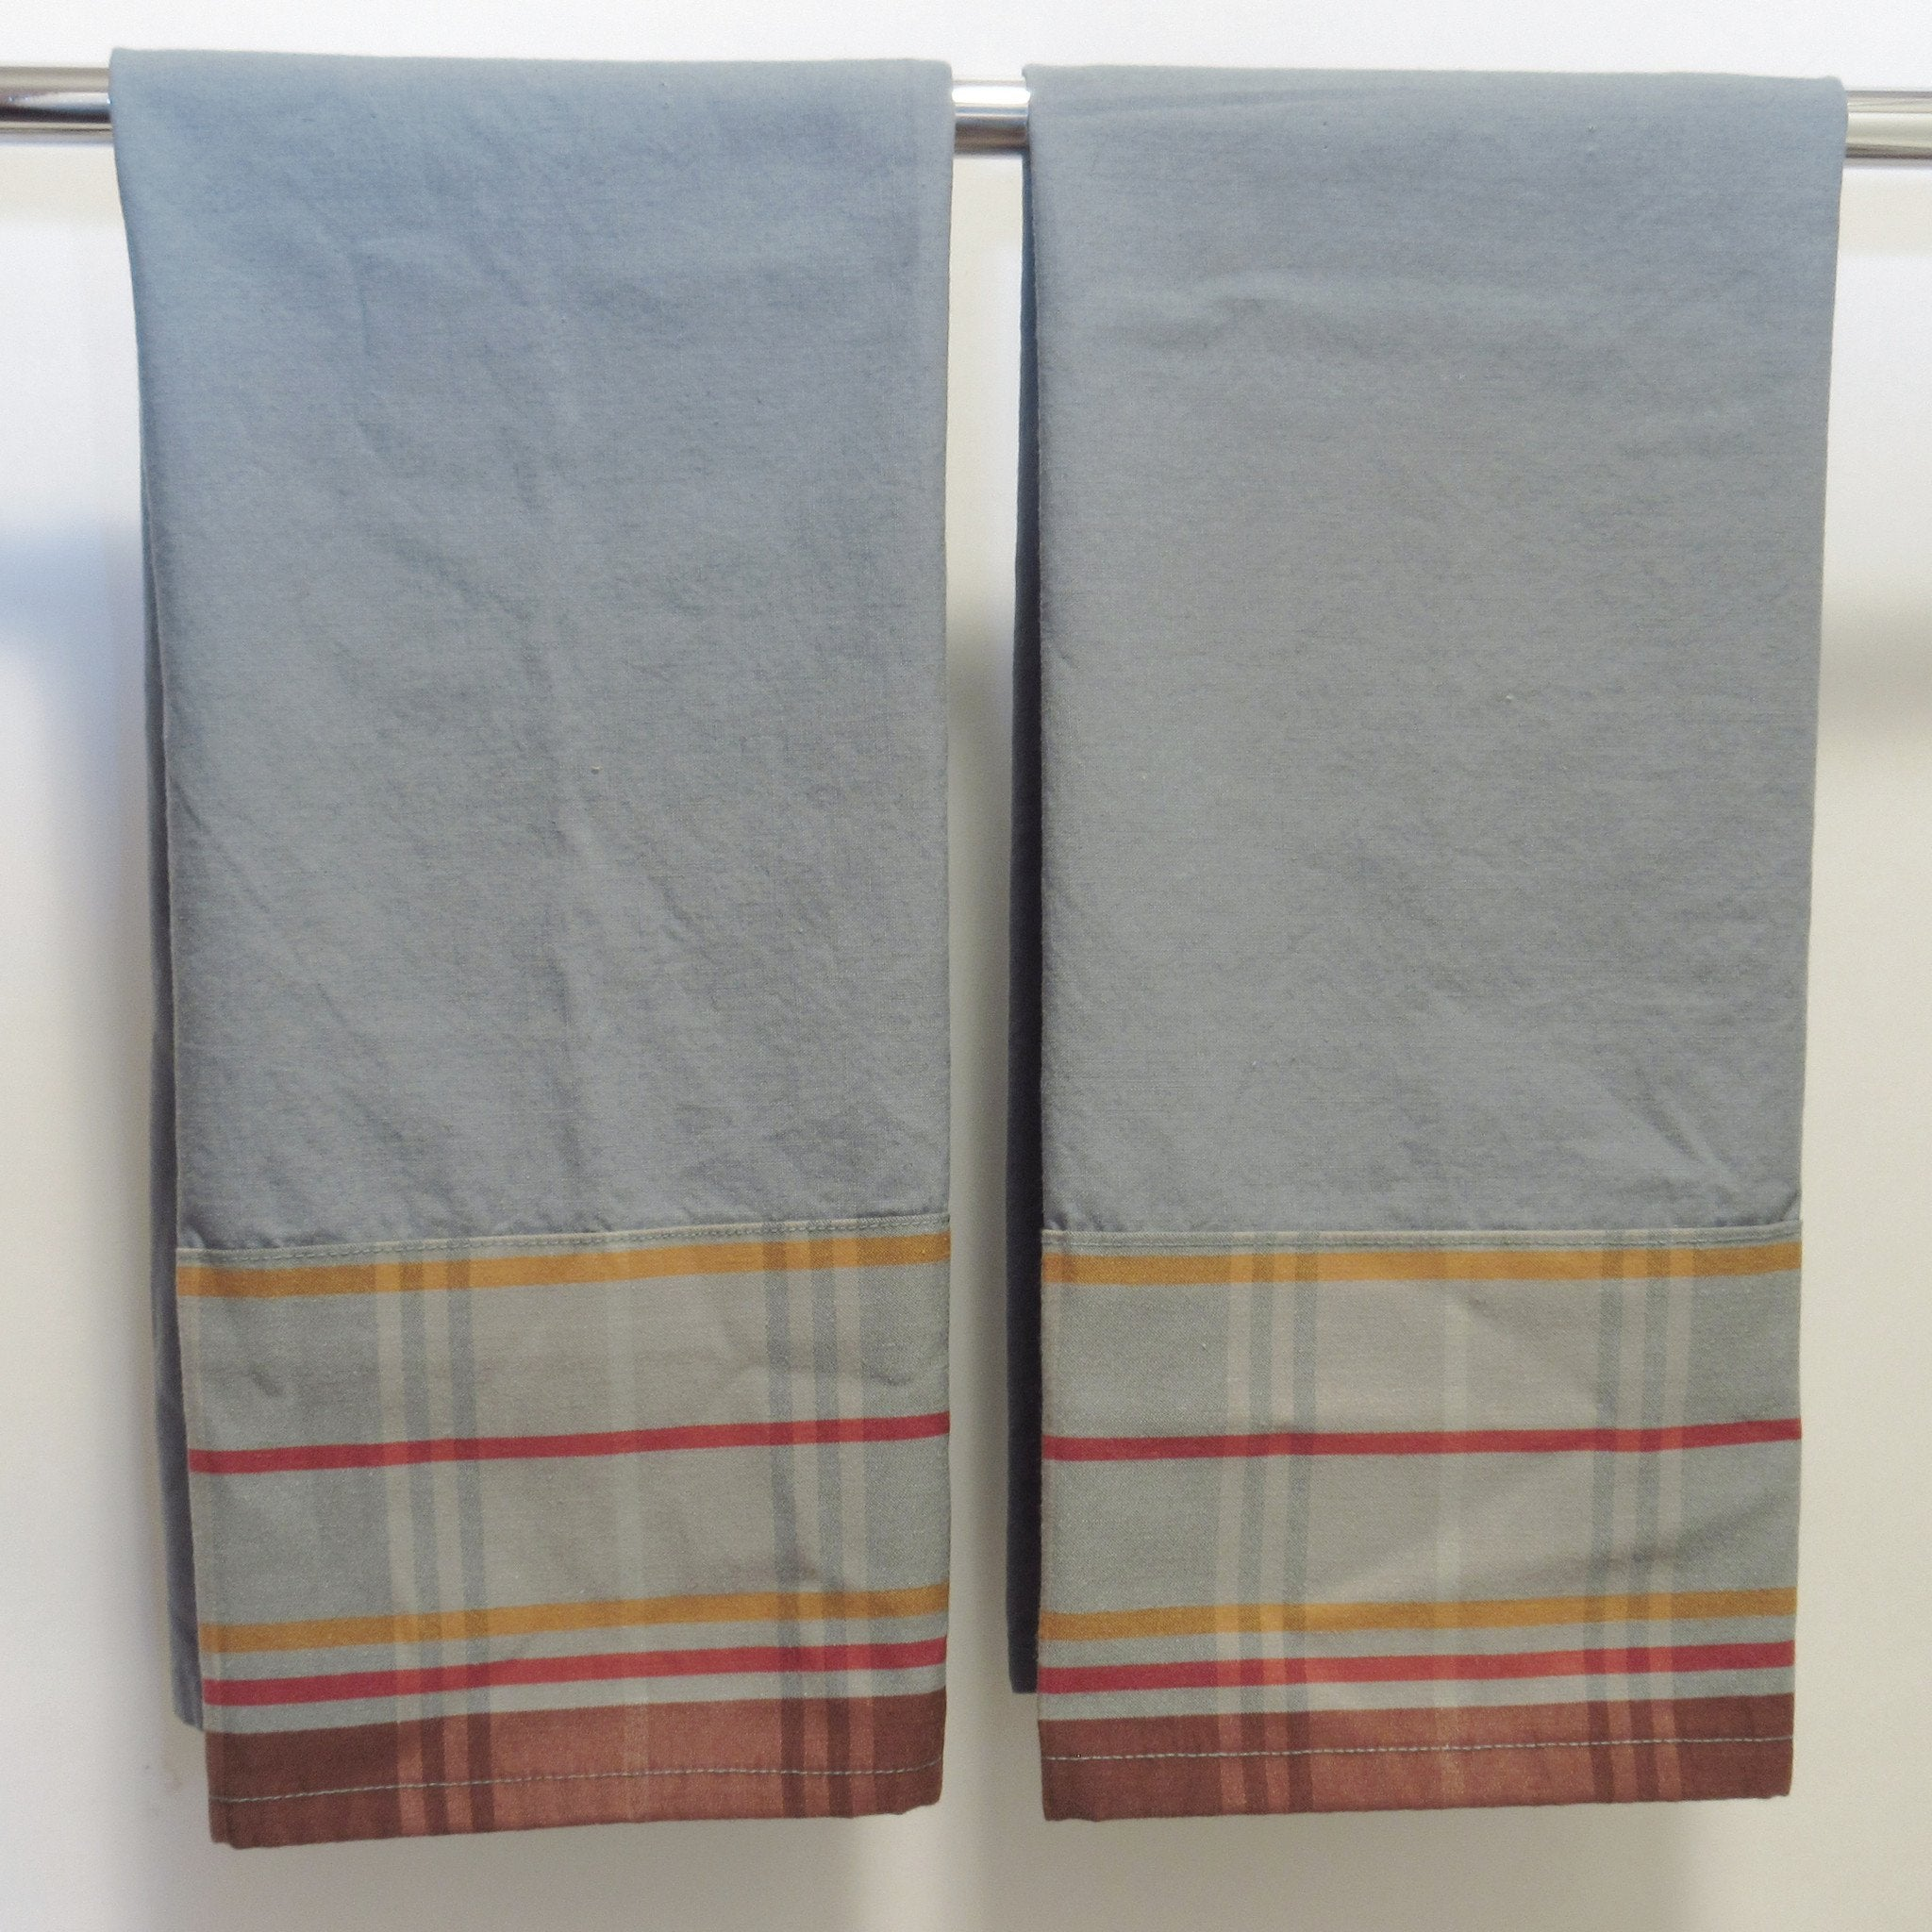 Drab Blue With Plaid Band Towel Set of 2